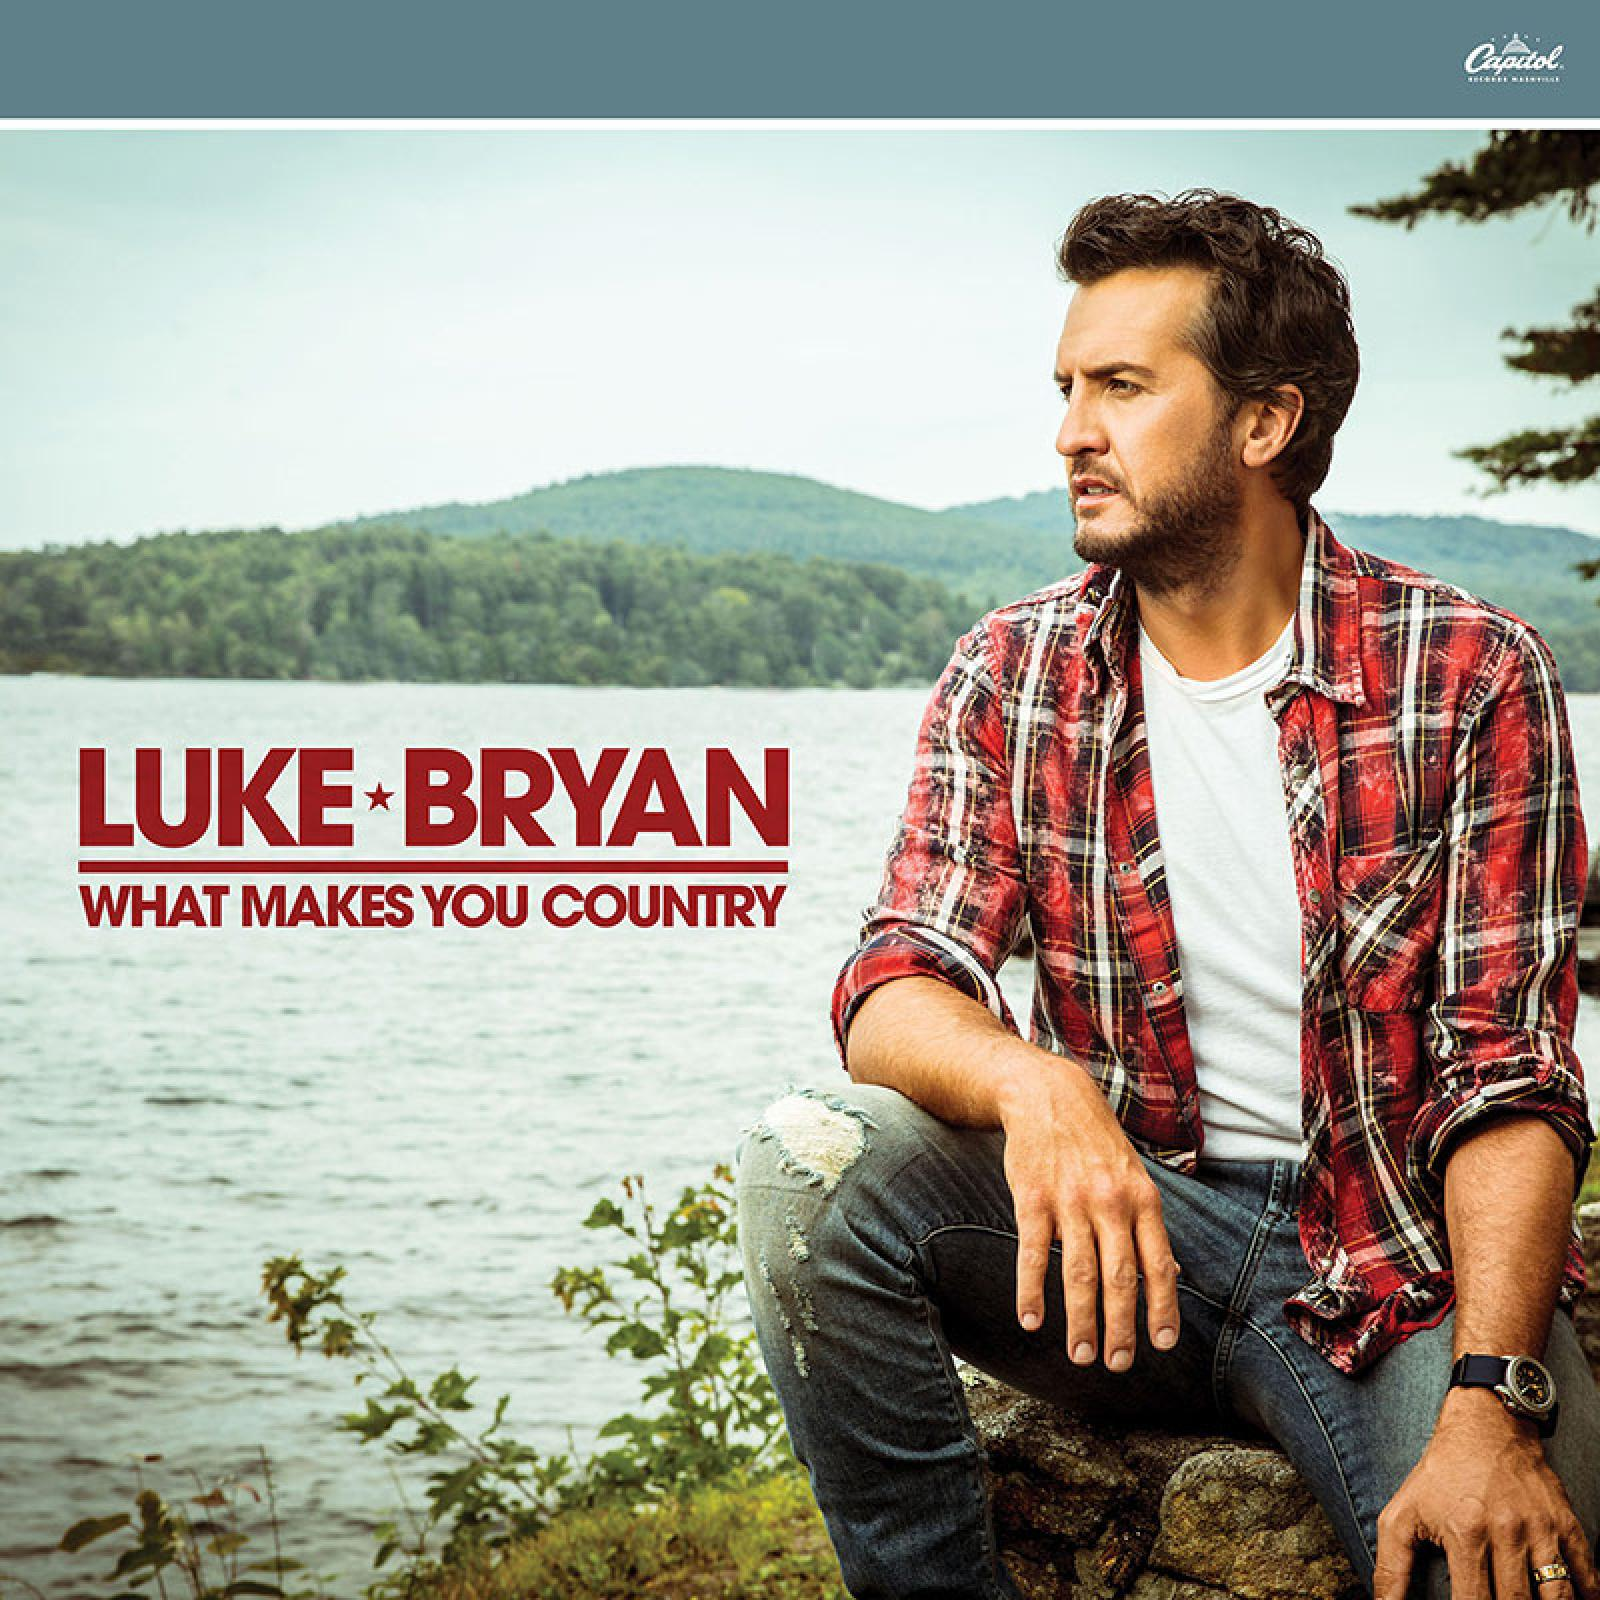 Luke Bryan Launches WHAT MAKES YOU COUNTRY Album with New RIAA Certifications and TV Appearances